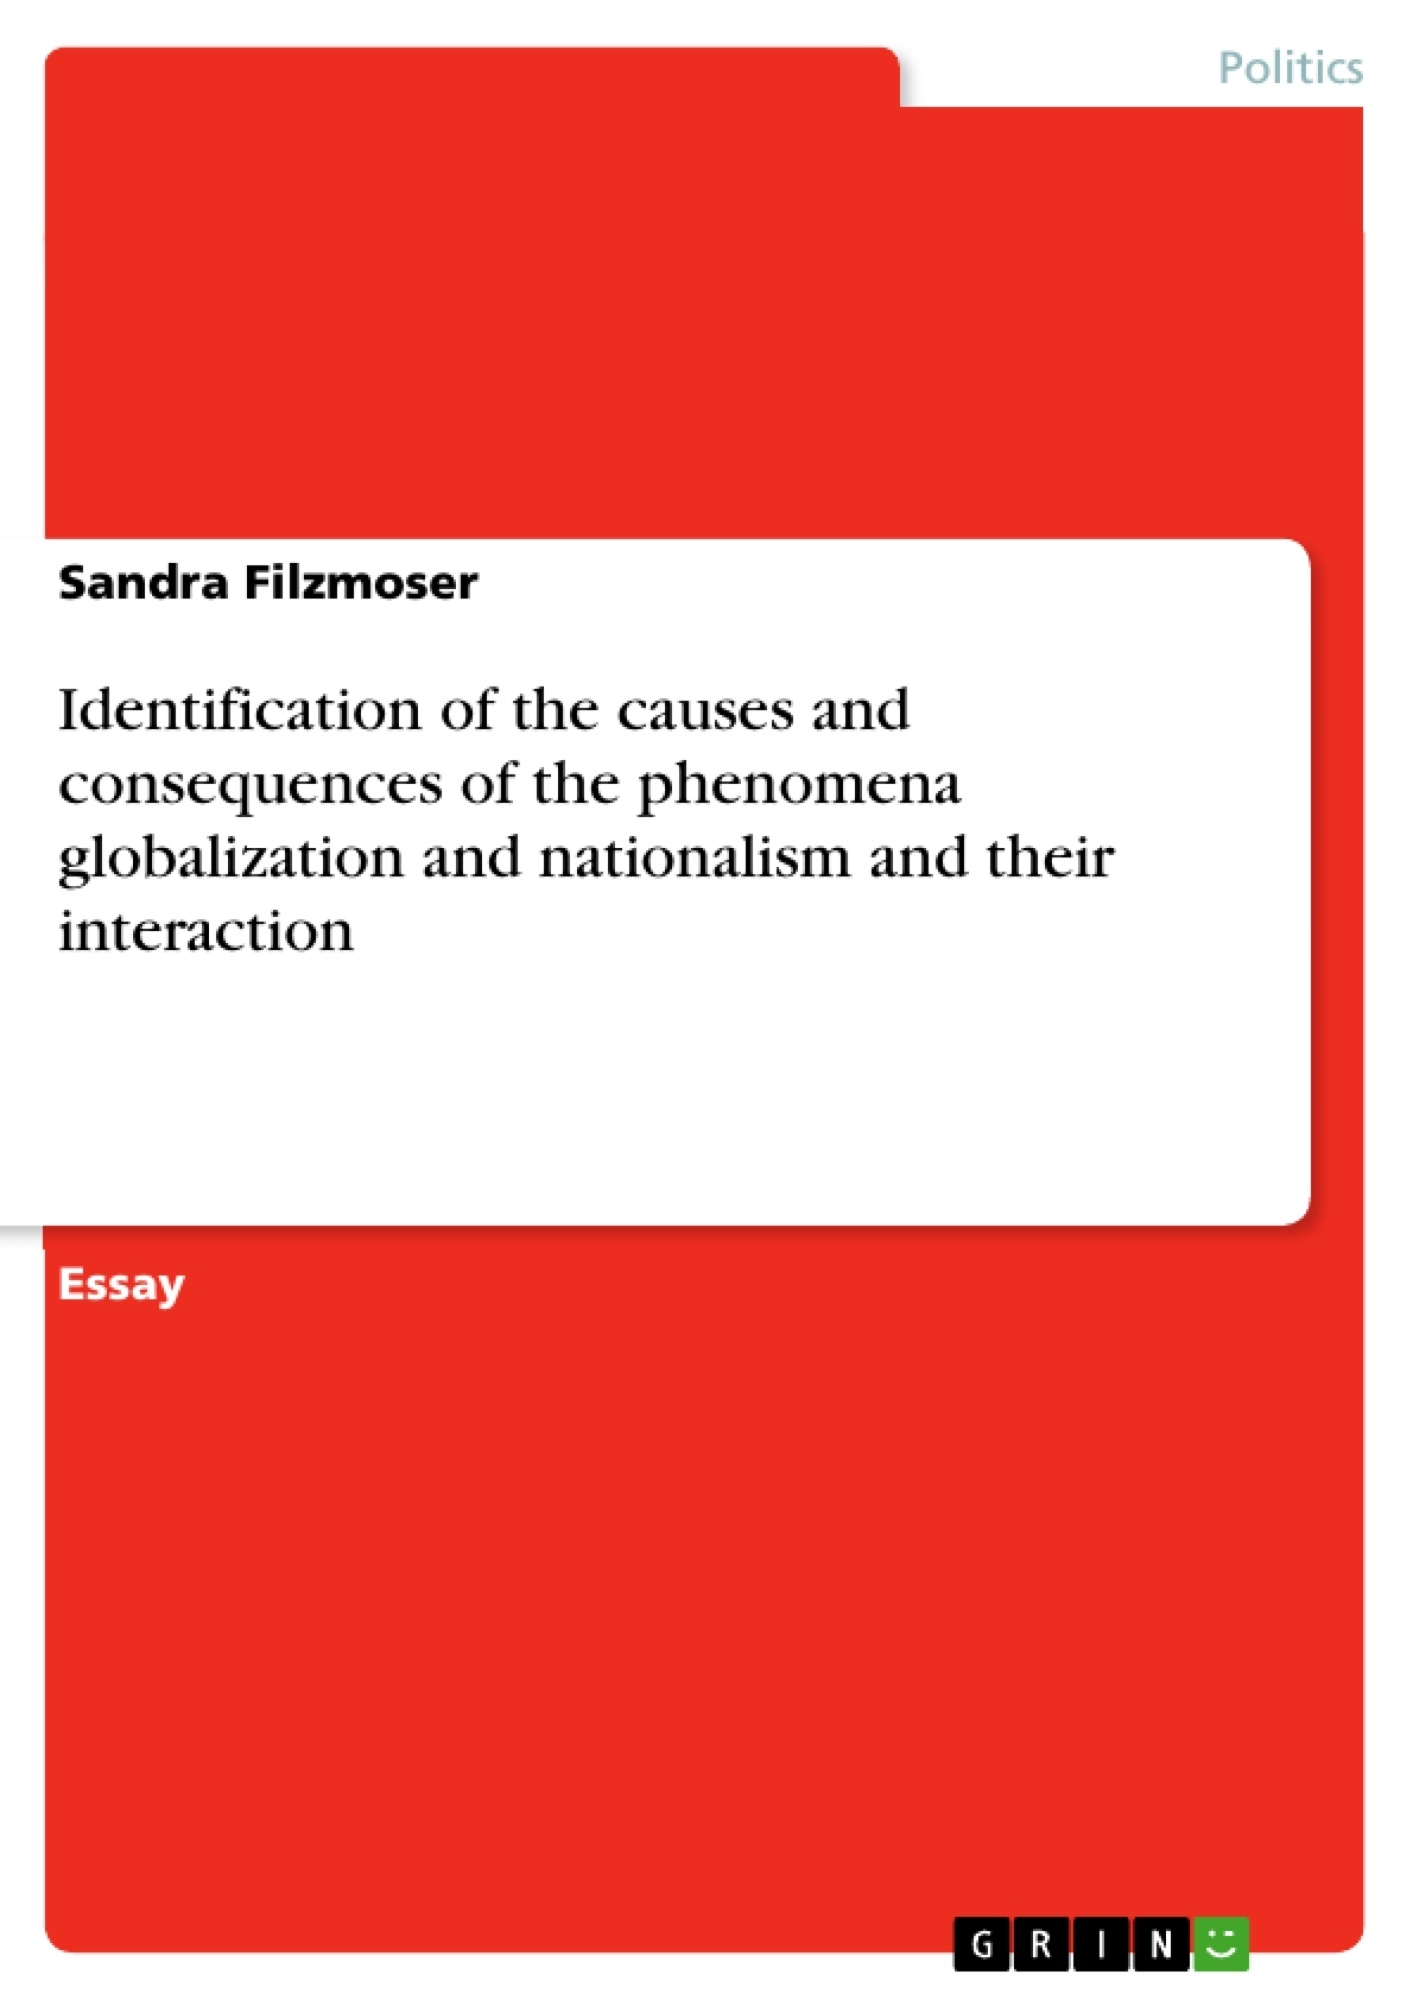 Title: Identification of the causes and consequences of the phenomena globalization and nationalism and their interaction